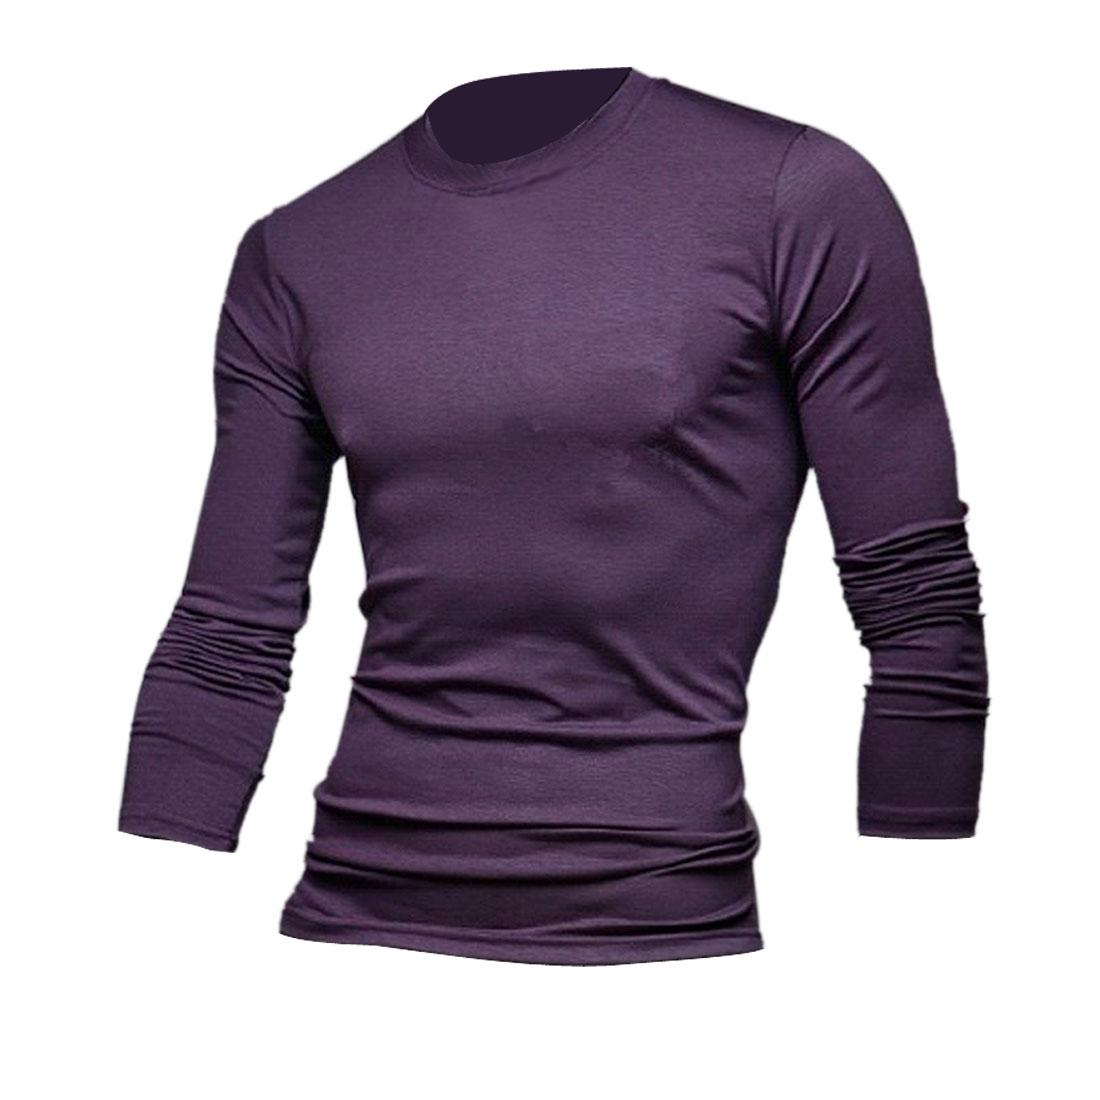 Mans Chic Round Neck Long Sleeve Pure Purple Color Casual Top Shirt S